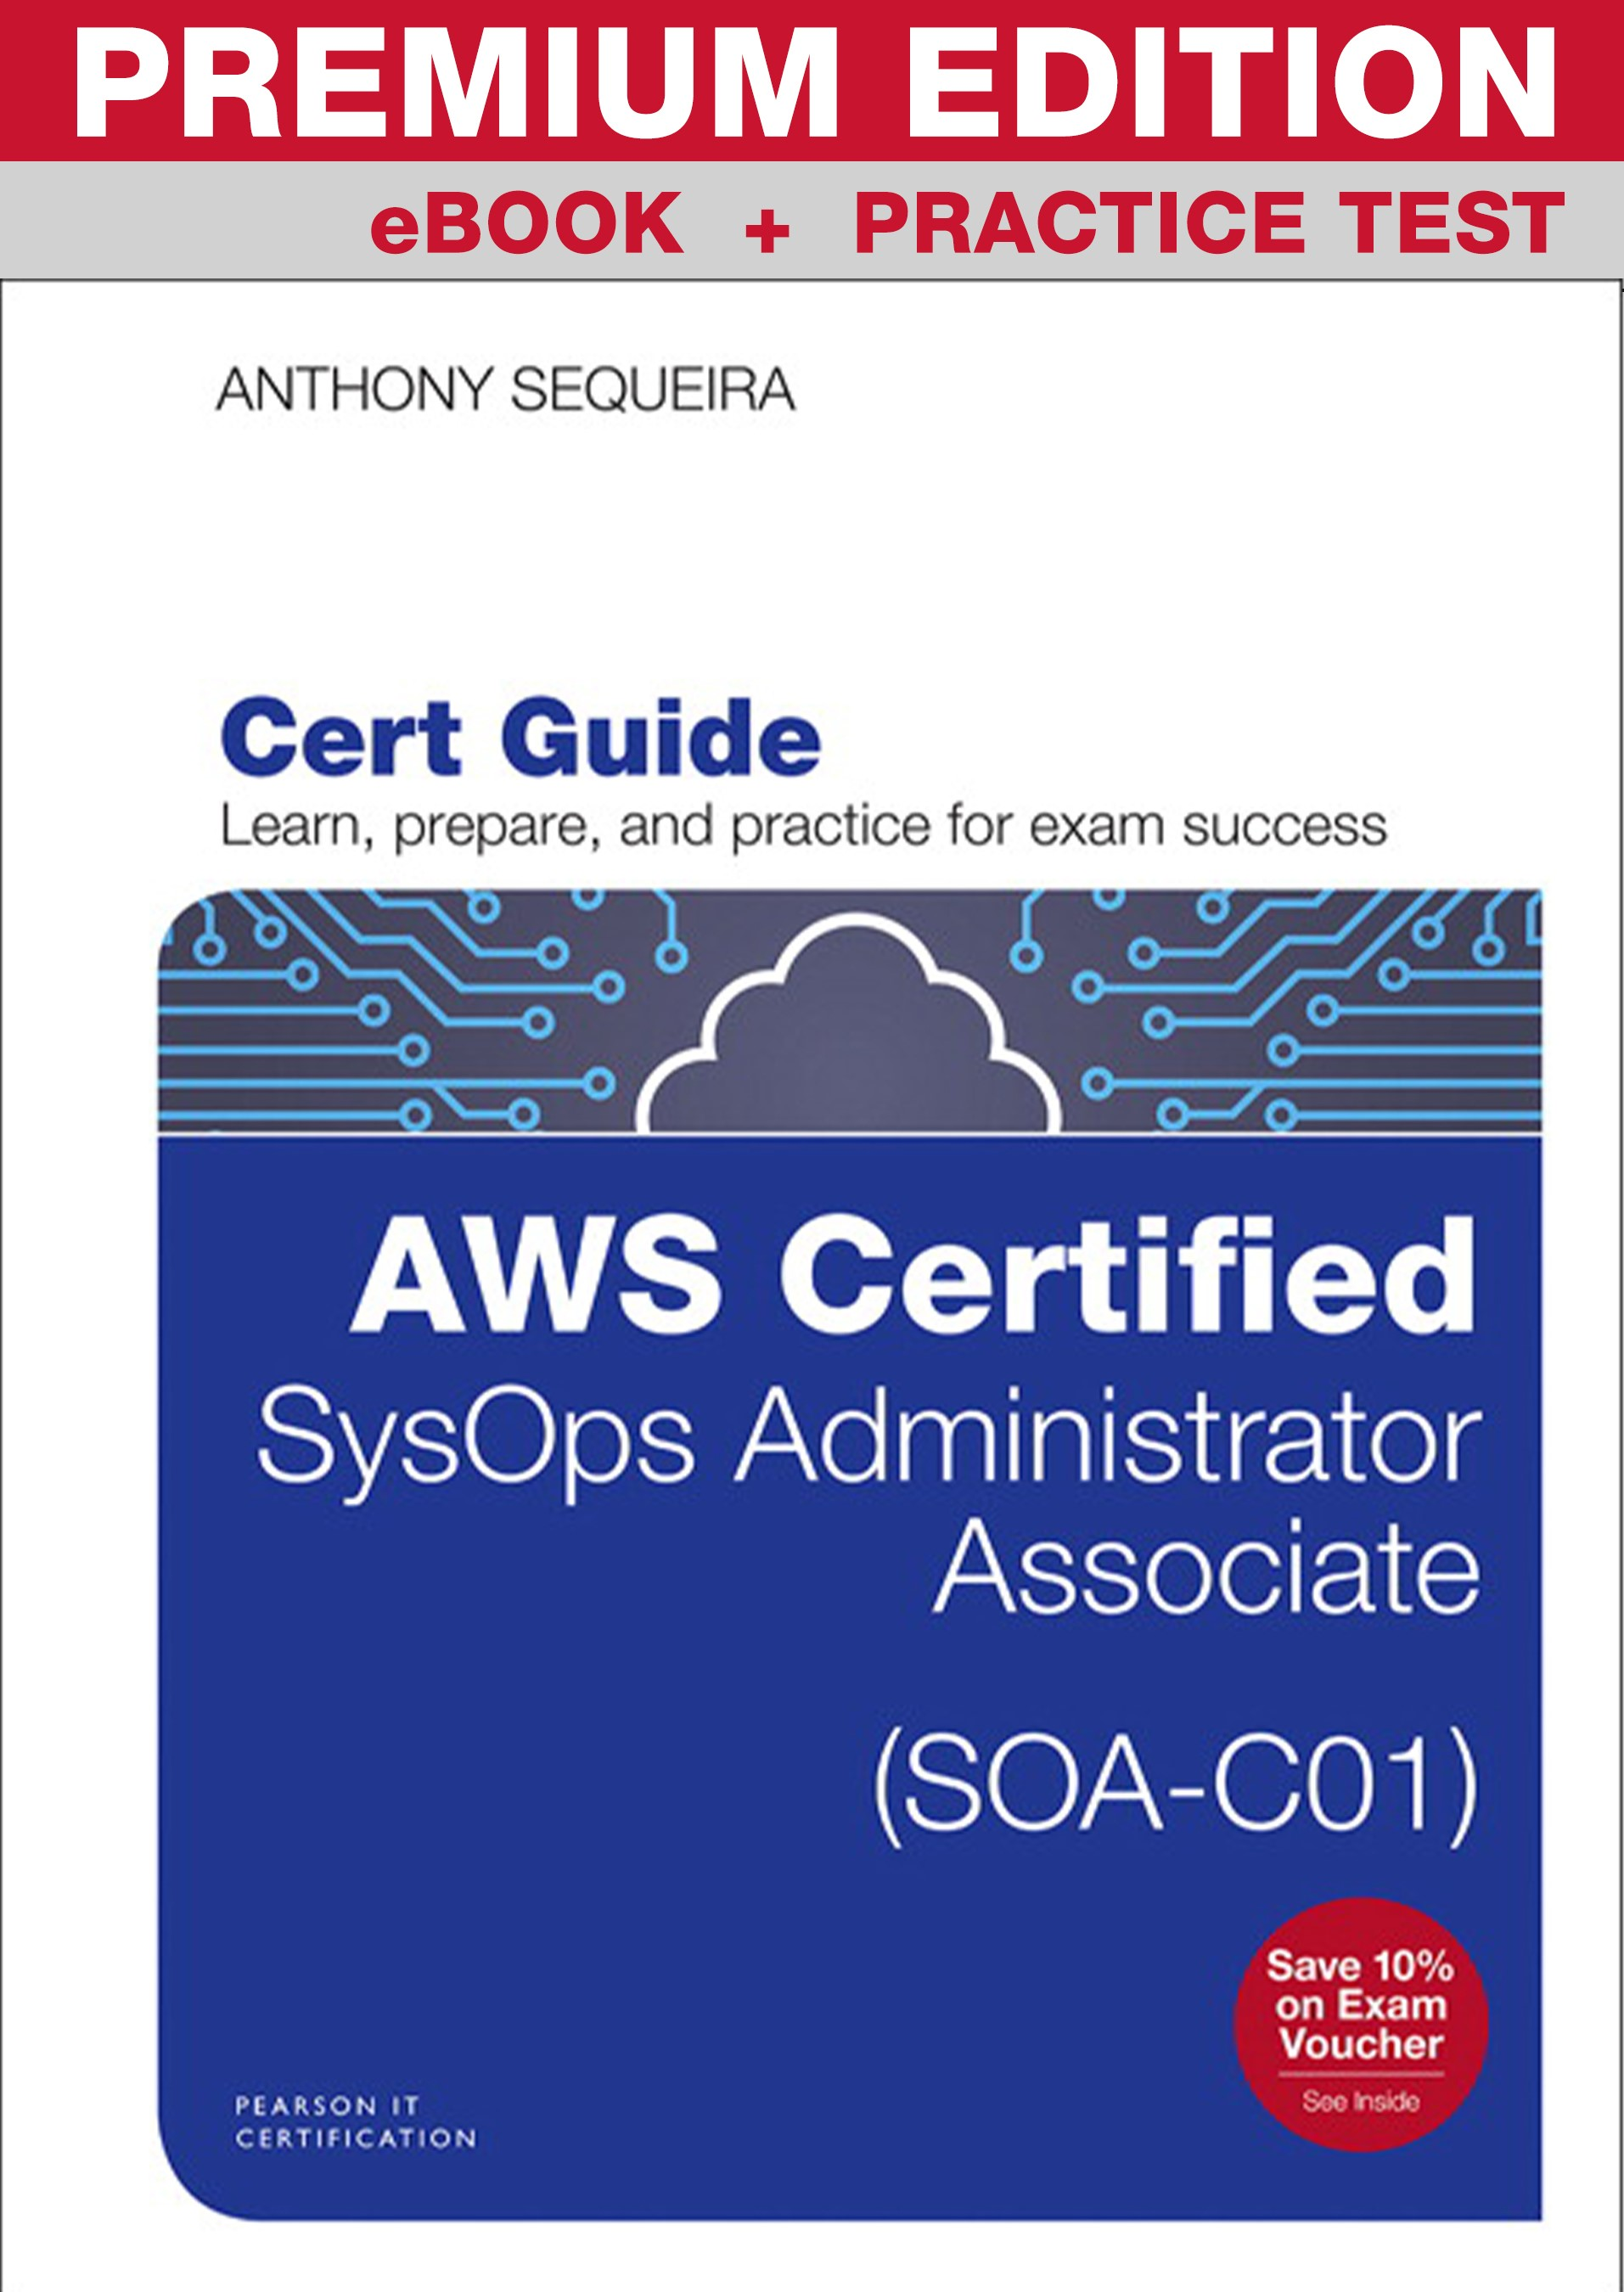 AWS Certified SysOps Administrator - Associate (SOA-C01) Cert Guide Premium Edition and Practice Test